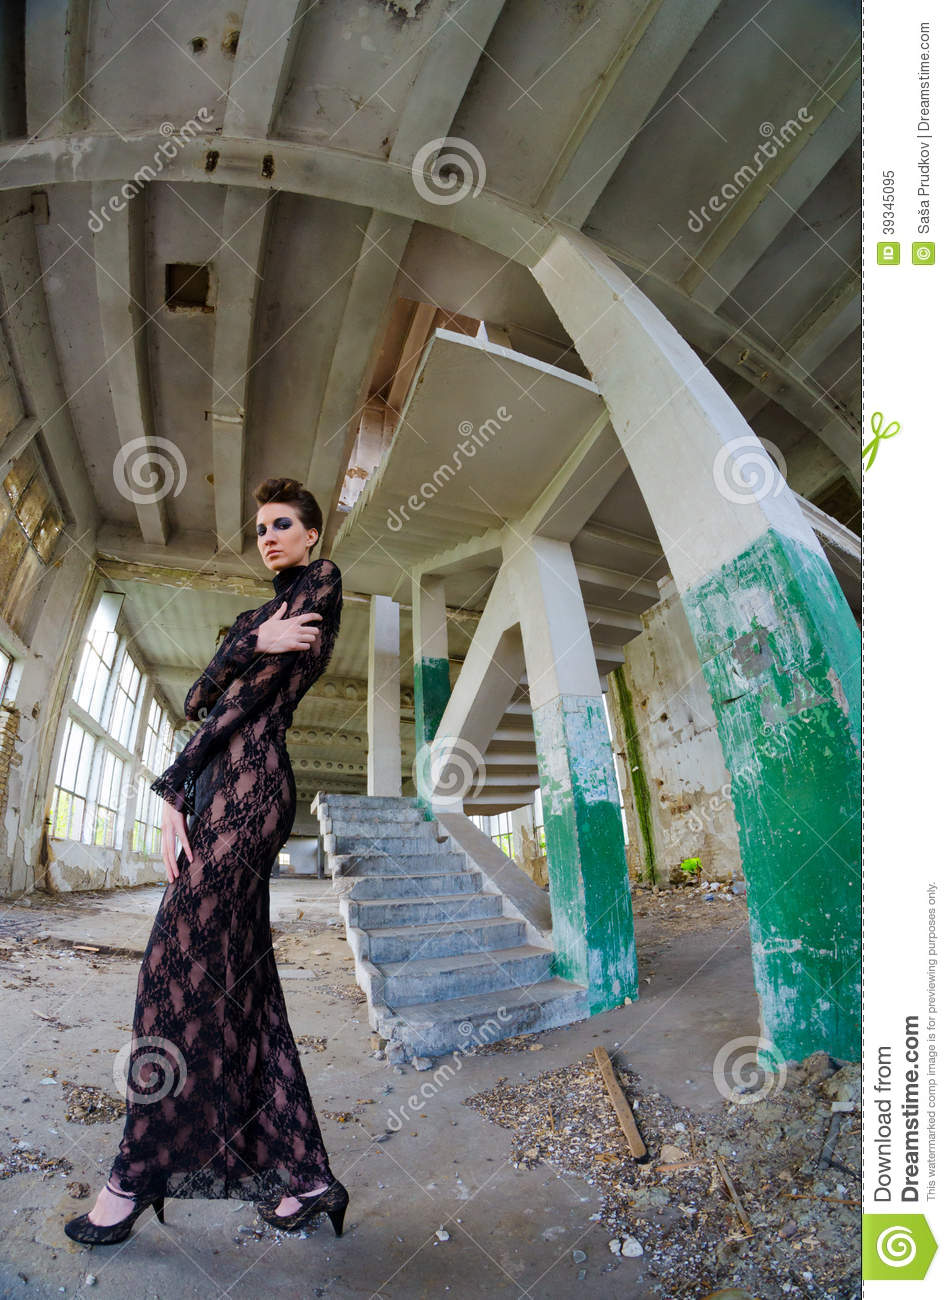 2 223 Model Abandoned Building Photos Free Royalty Free Stock Photos From Dreamstime